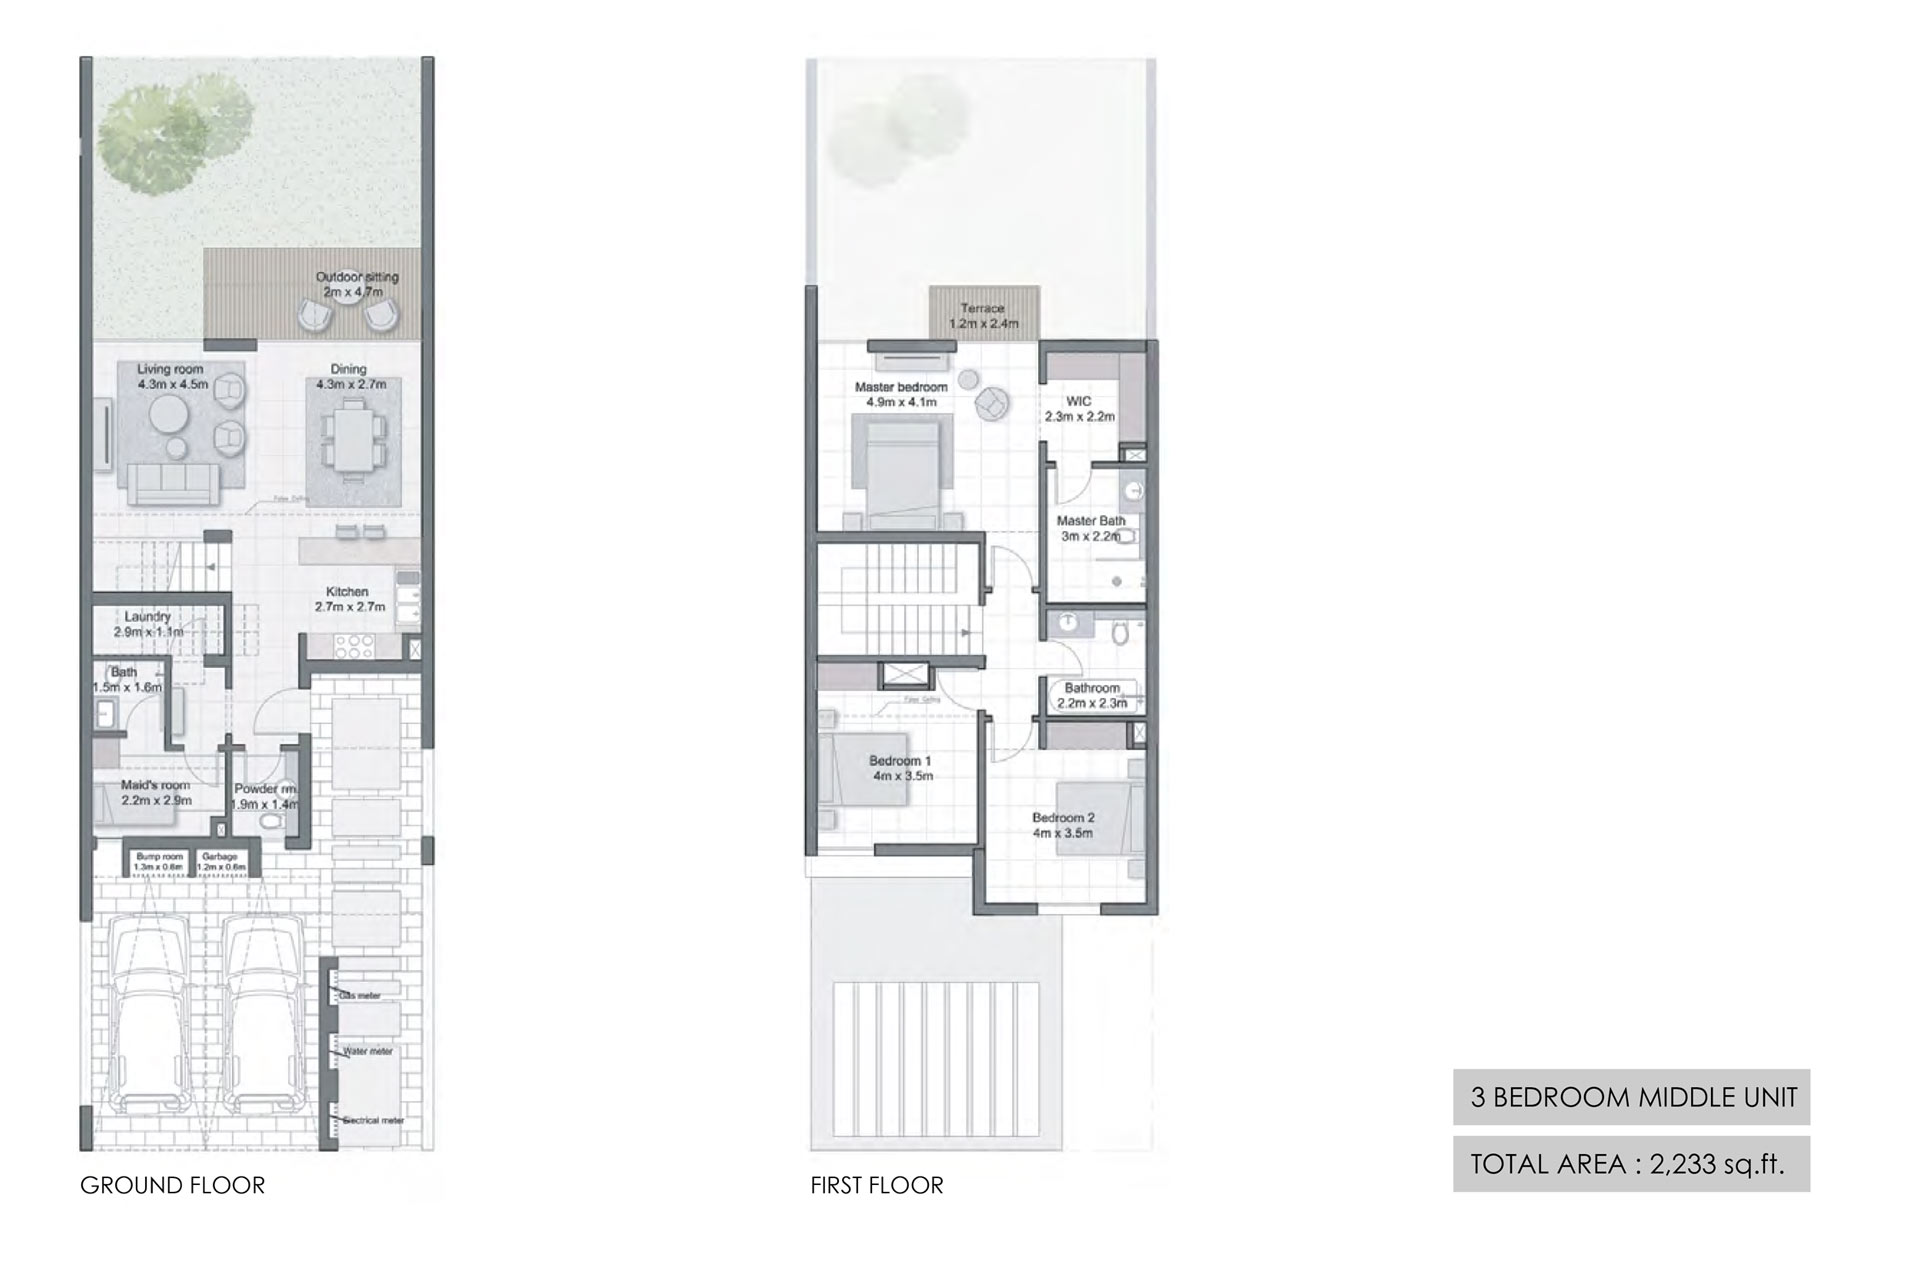 3 Bedroom Middle Unit Size 2233  sq. ft.